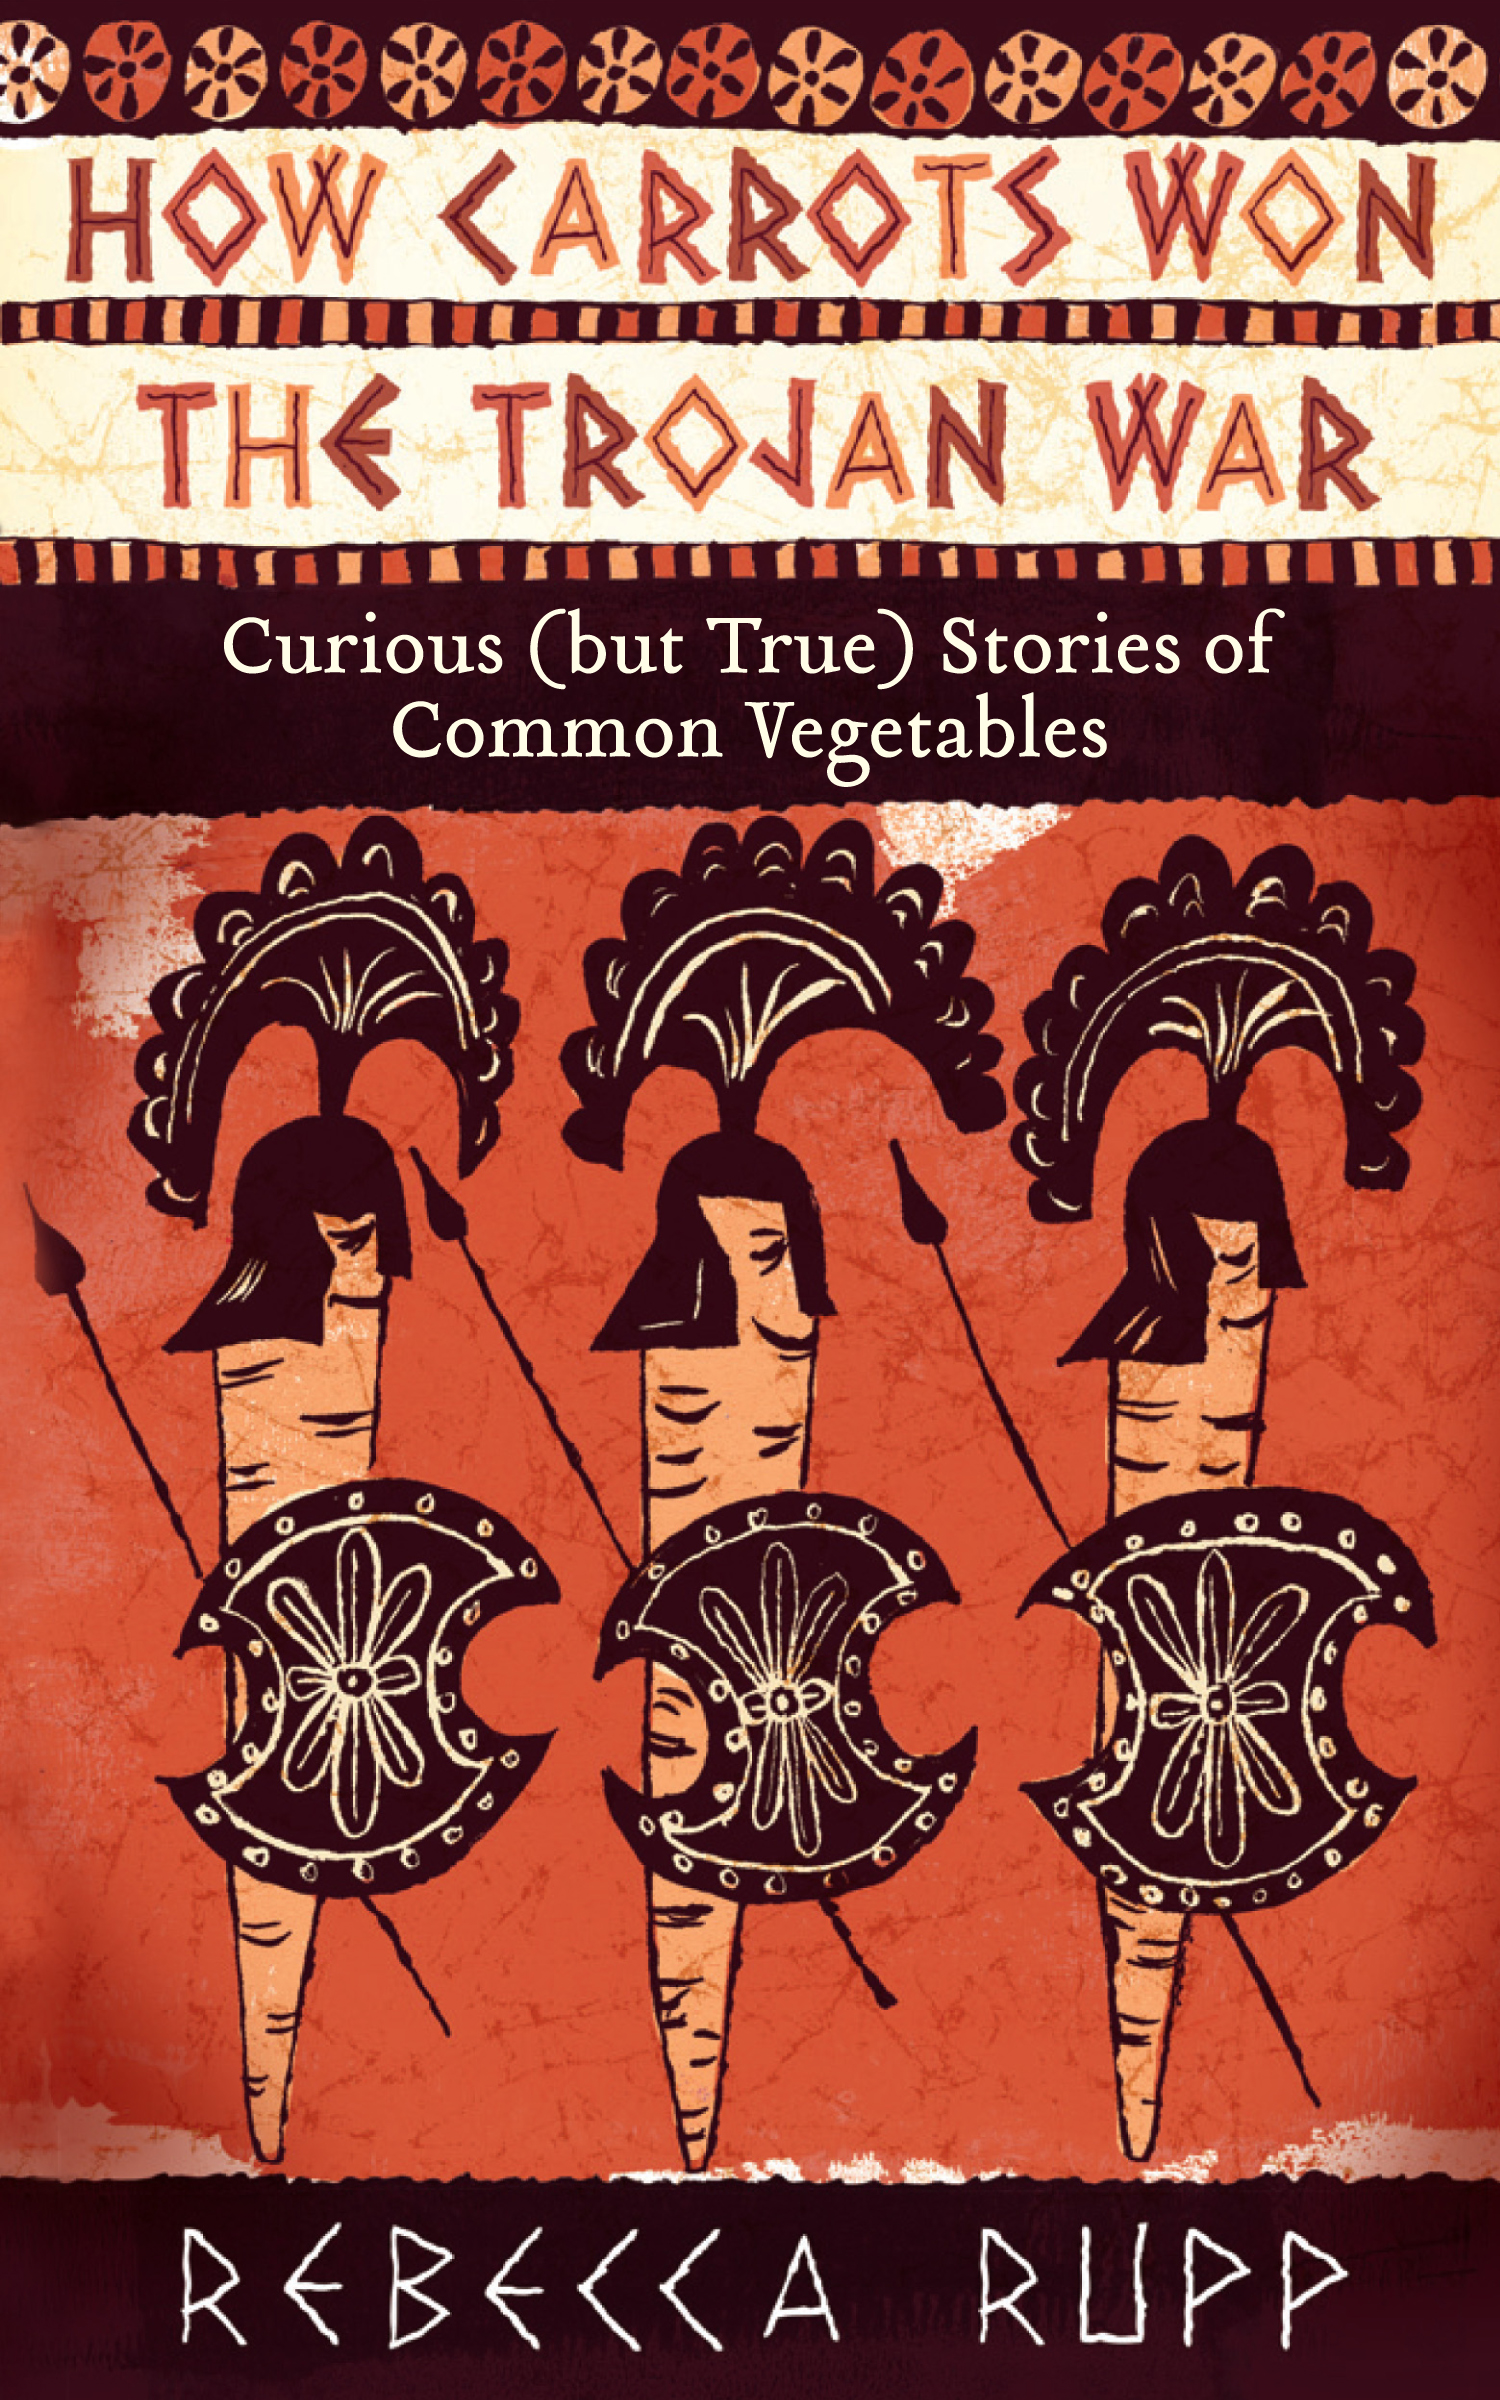 How Carrots Won the Trojan War Curious (but True) Stories of Common Vegetables - Rebecca Rupp